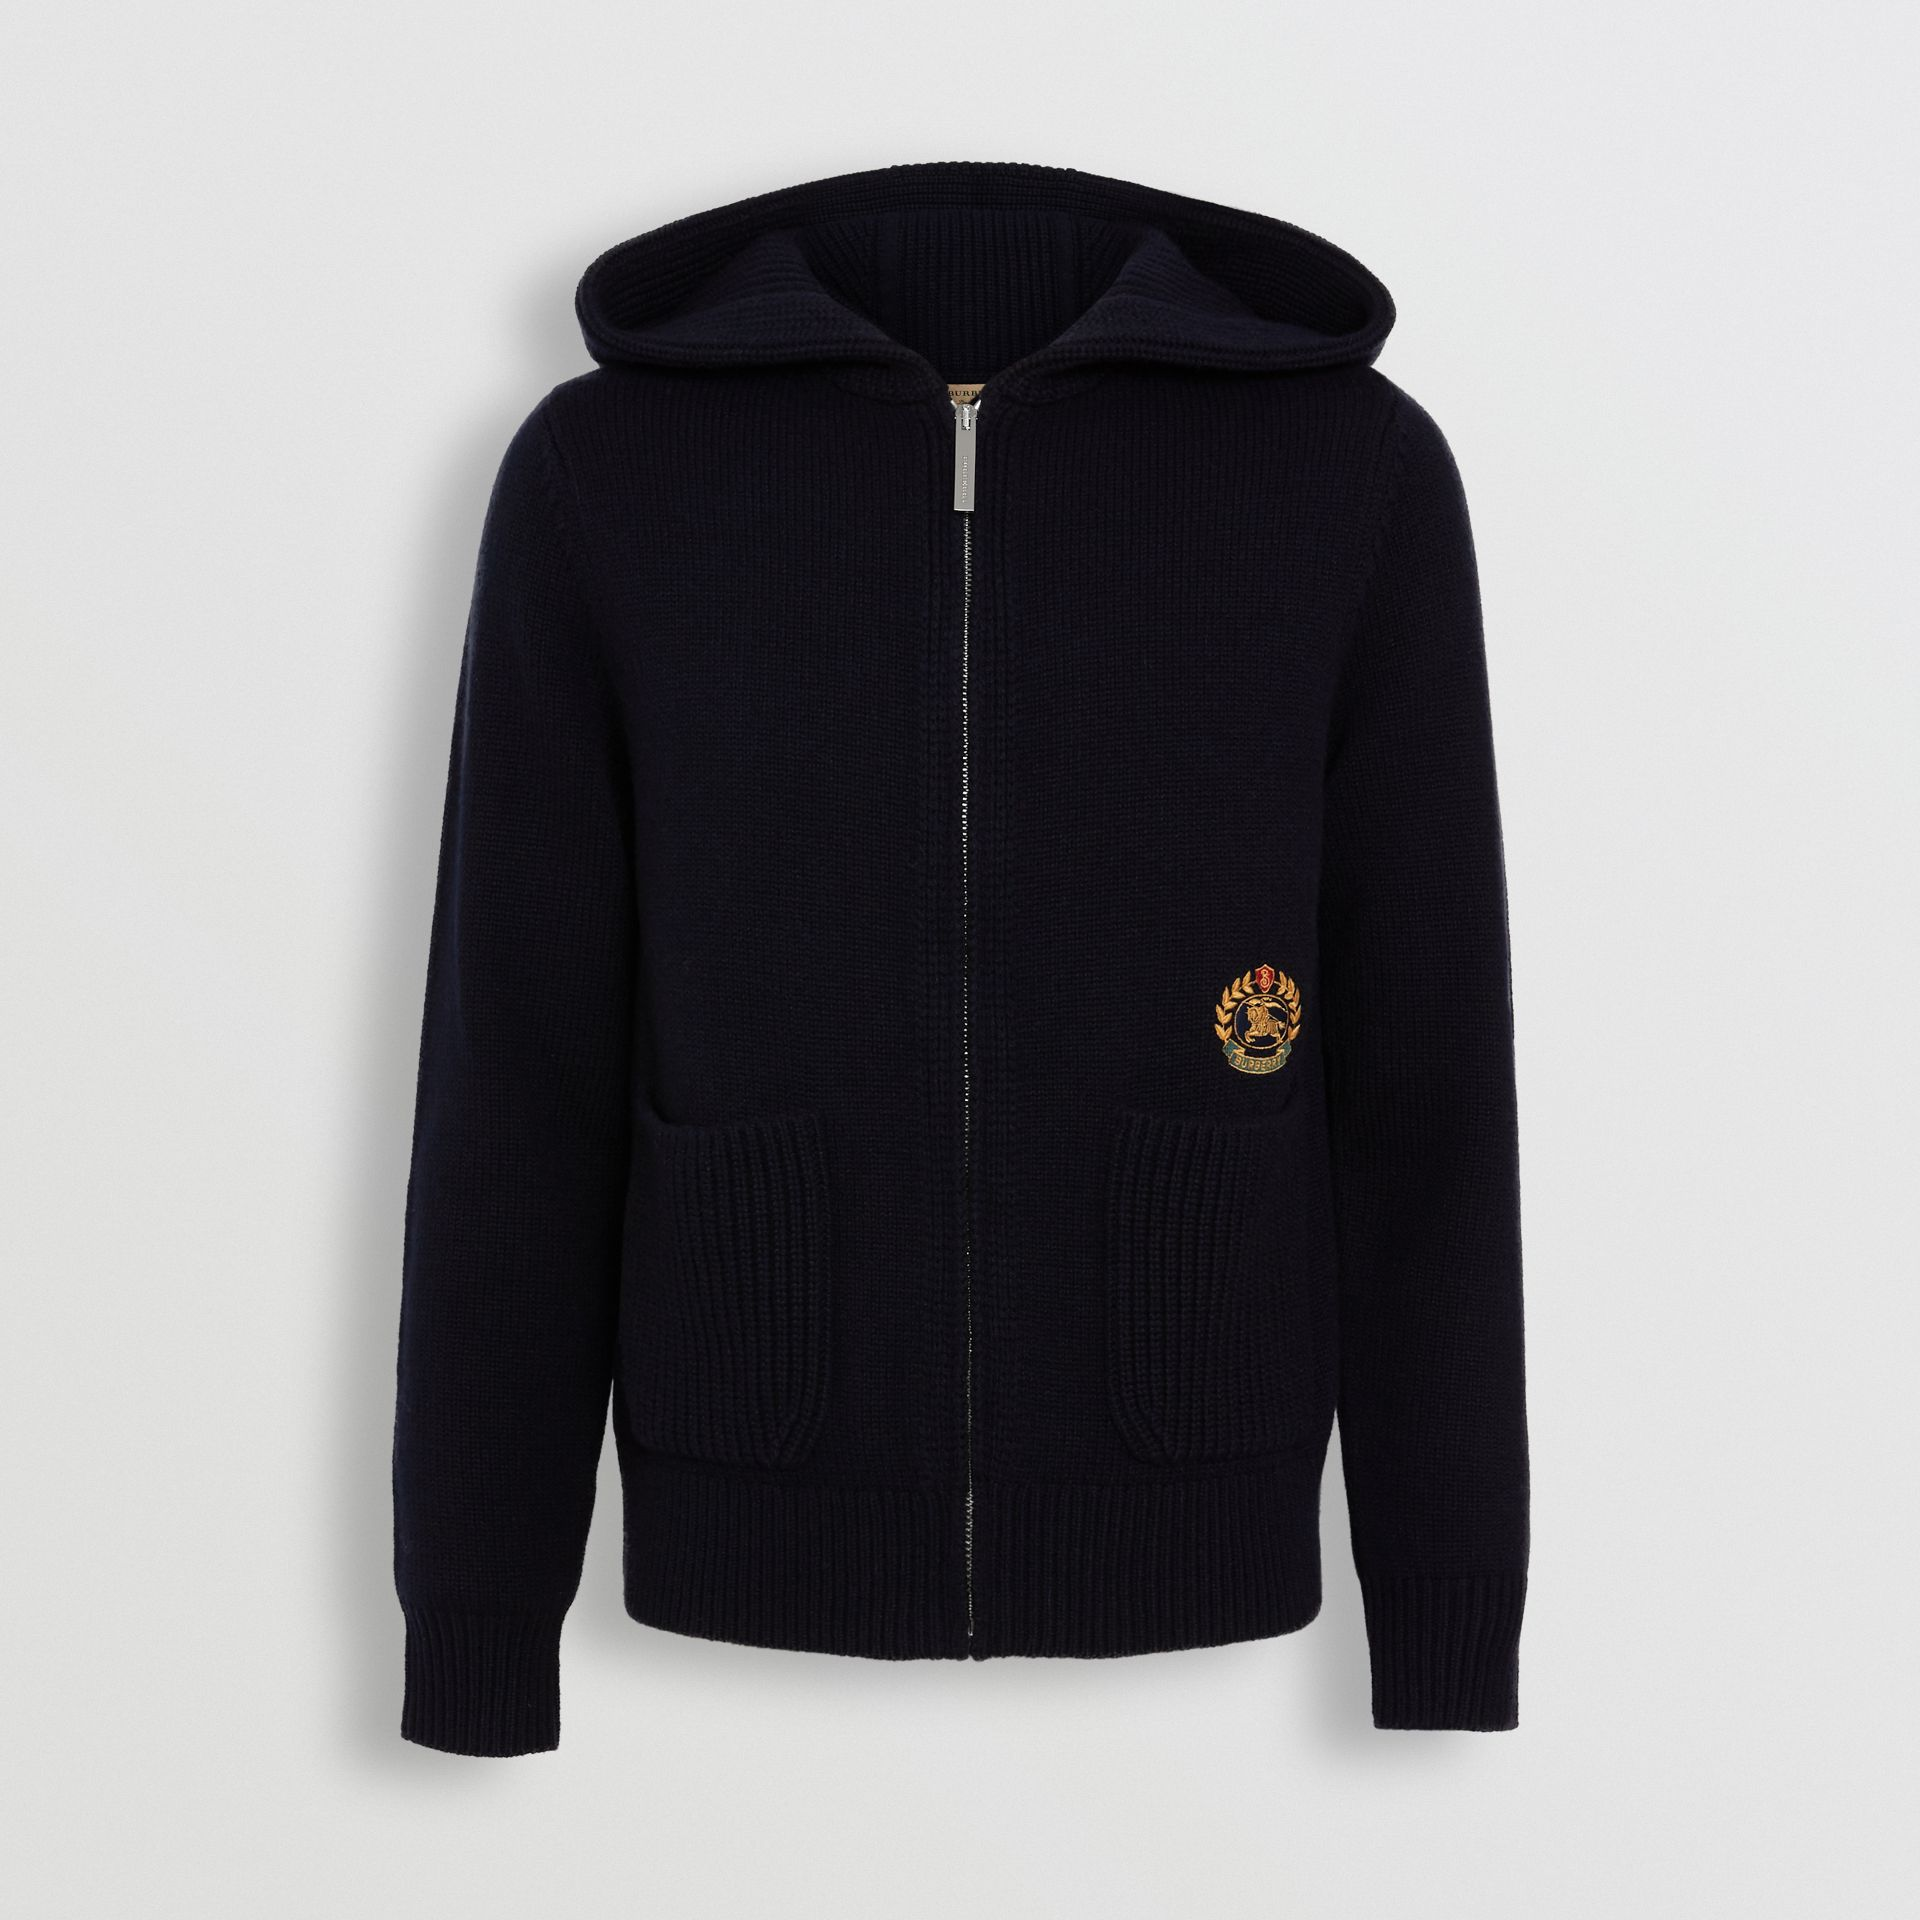 Embroidered Crest Cashmere Hooded Top in Navy - Women | Burberry Singapore - gallery image 3